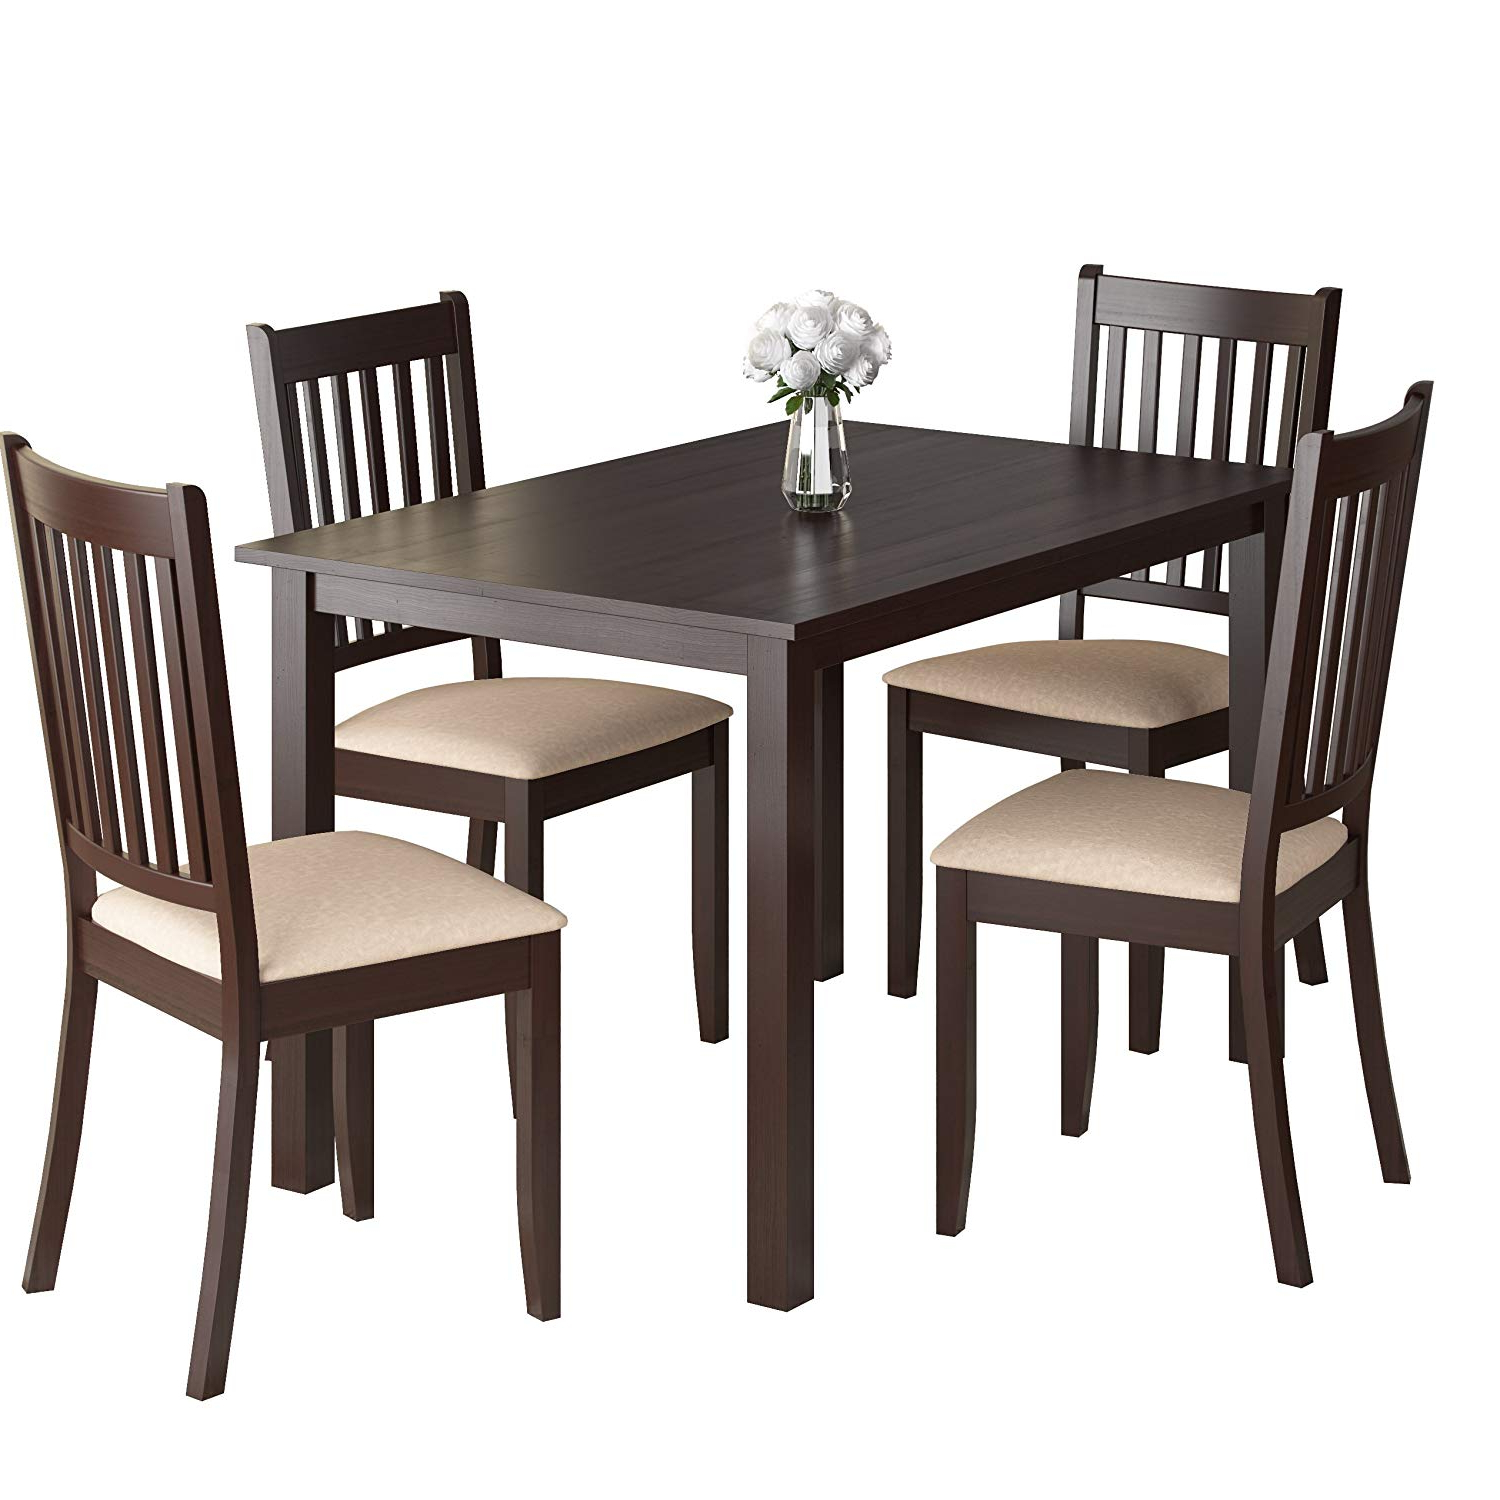 Amazon – Corliving Drg 595 Z Atwood Dining Set, Brown Throughout Widely Used Atwood Transitional Square Dining Tables (View 3 of 30)